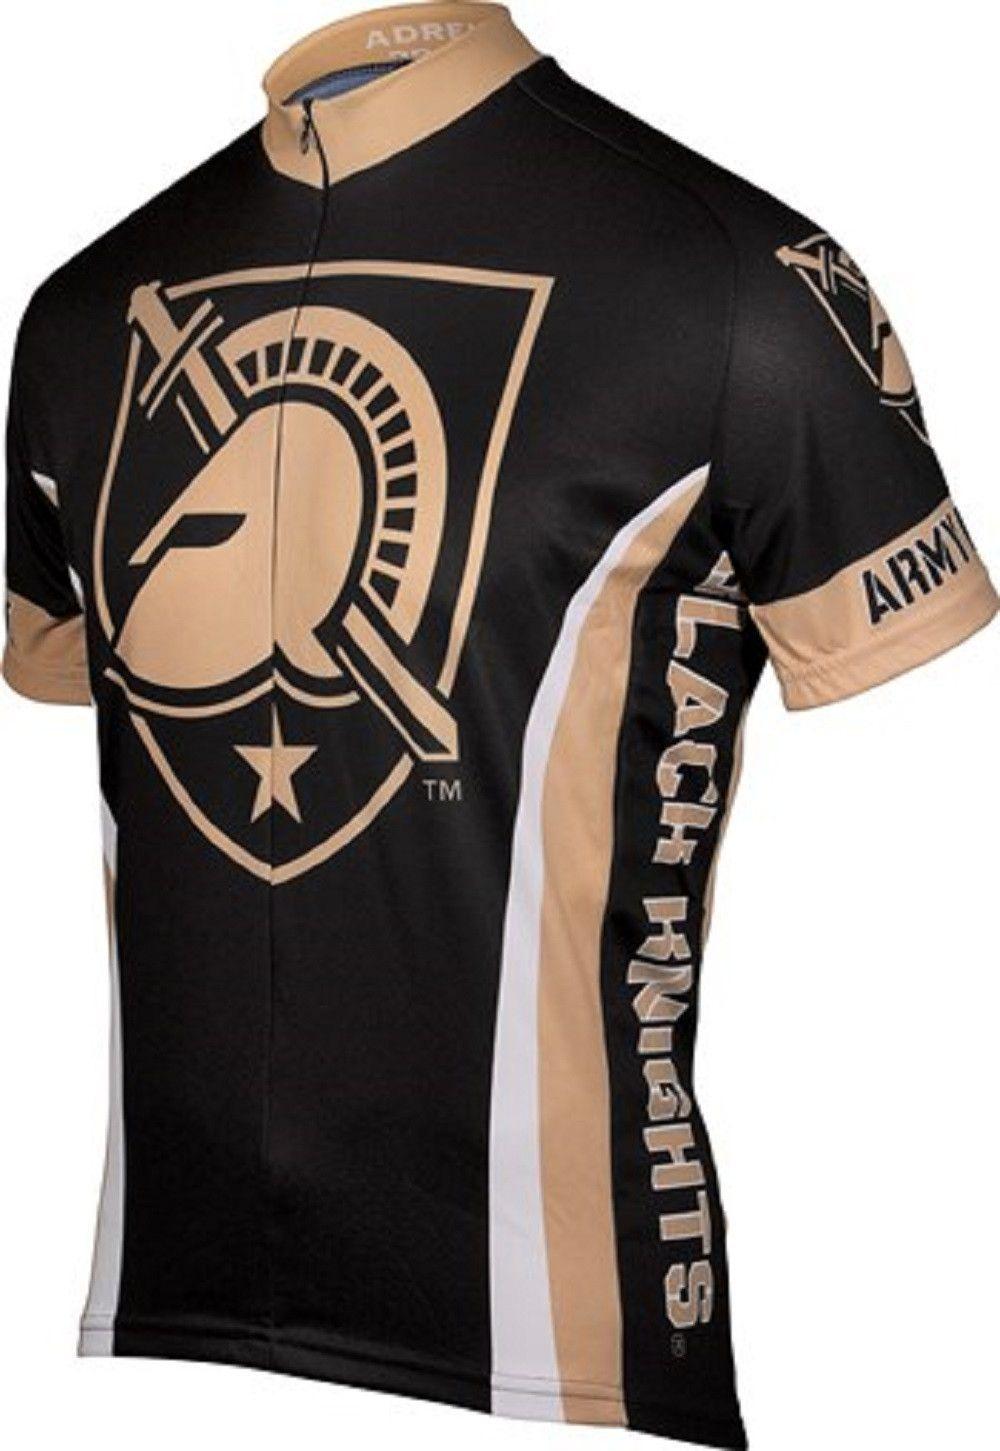 2109f7d93 NCAA Men s Adrenaline Promotions Army Black Knights Cycling Jersey ...